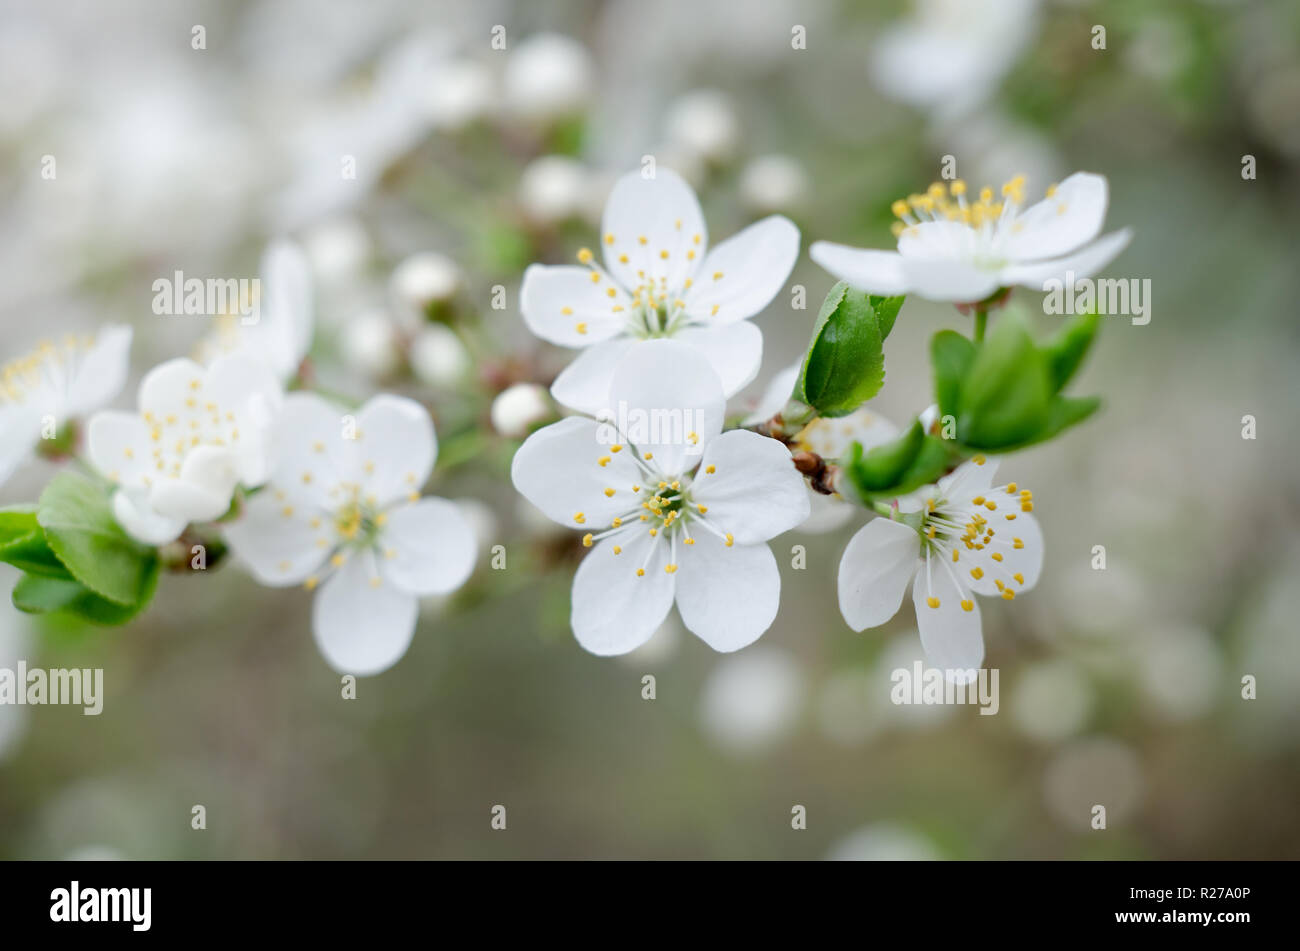 Plum Tree Blossoms White Spring Flowers Close Up Soft Focus Spring